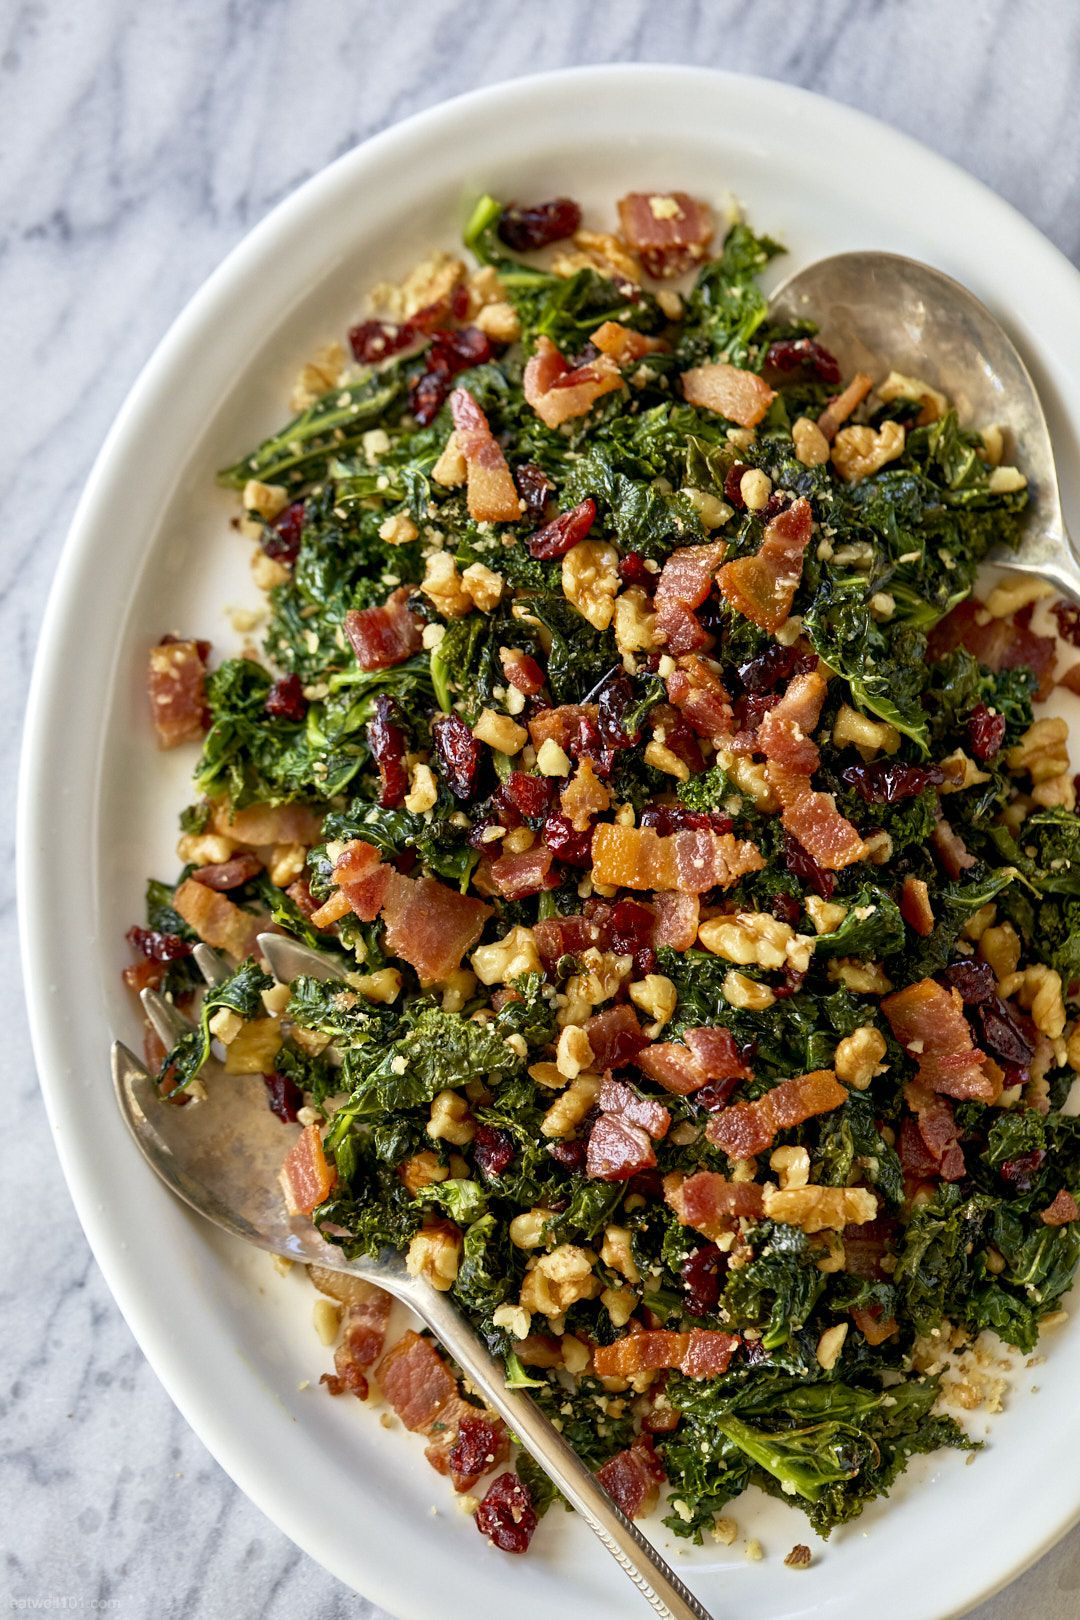 Photo of Healthy Sautéed Kale Salad with Bacon, Walnuts and Cranberries